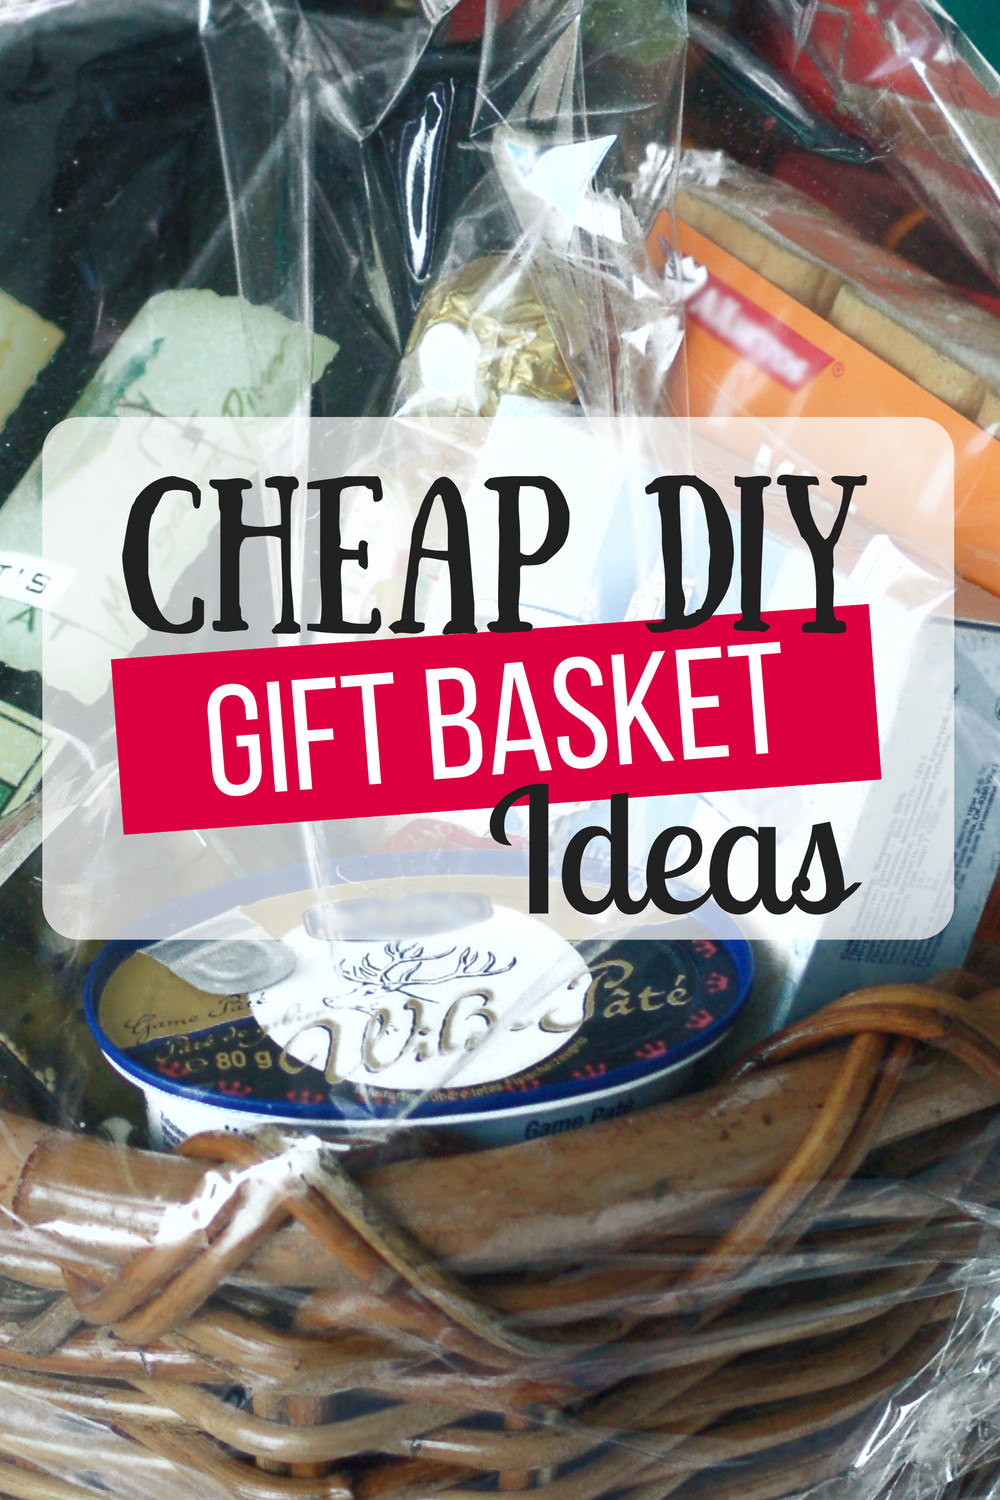 Best ideas about Ideas For Gift Baskets . Save or Pin Cheap DIY Gift Baskets The Busy Bud er Now.